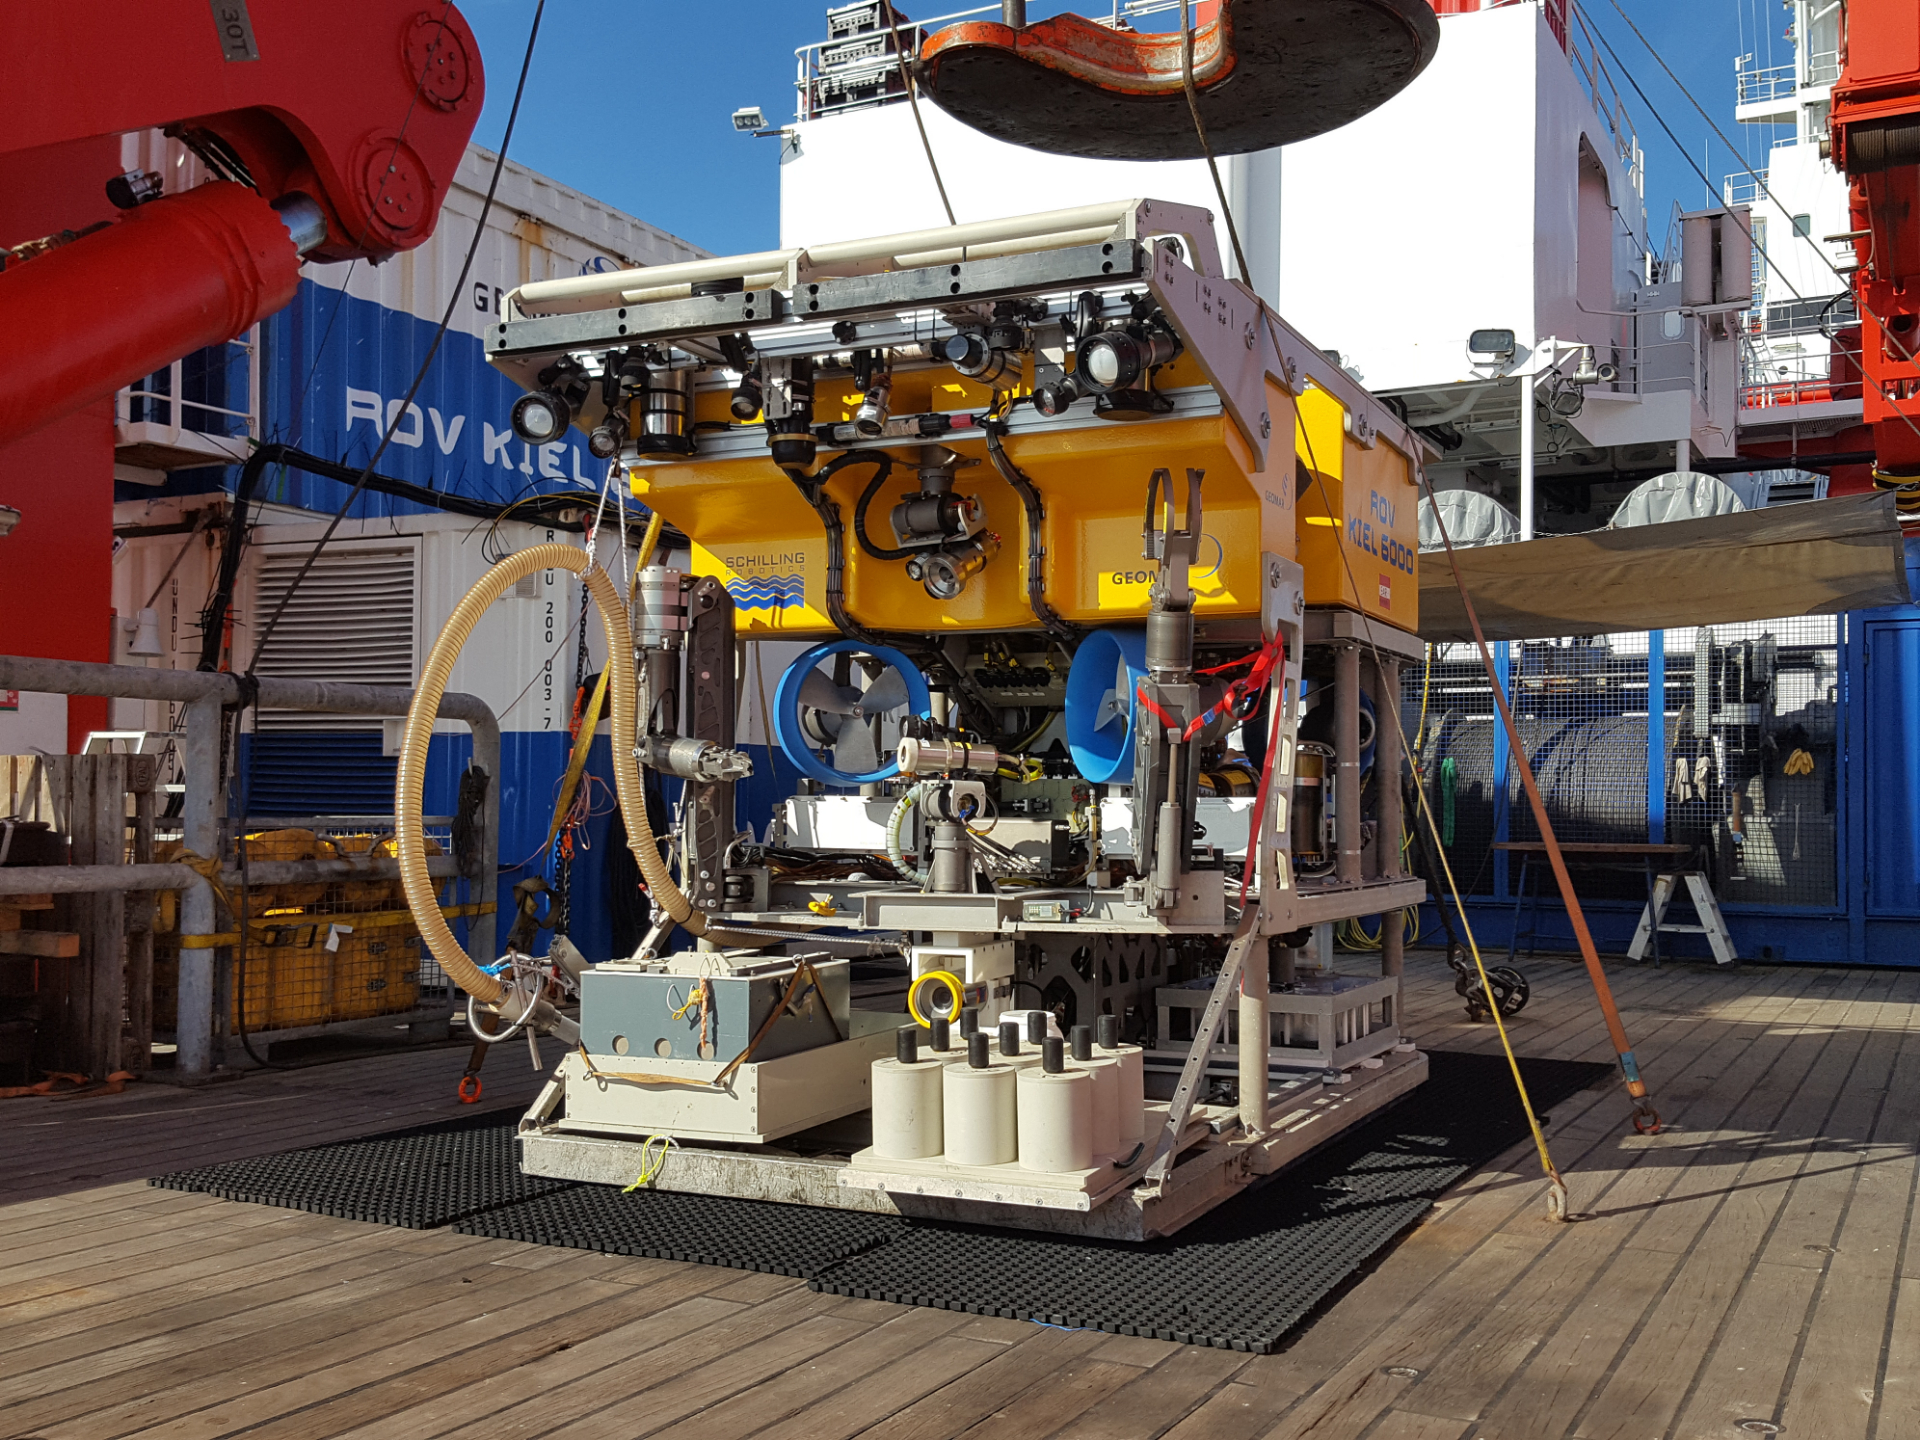 The remotely operated vehicle ROV Kiel 6000 of GEOMAR, workhorse of the MiningImpact2 expedition. It was used among others for deploying and recovering NIOZ sensor platforms and artificial nodule frames. Photo: Henko de Stigter